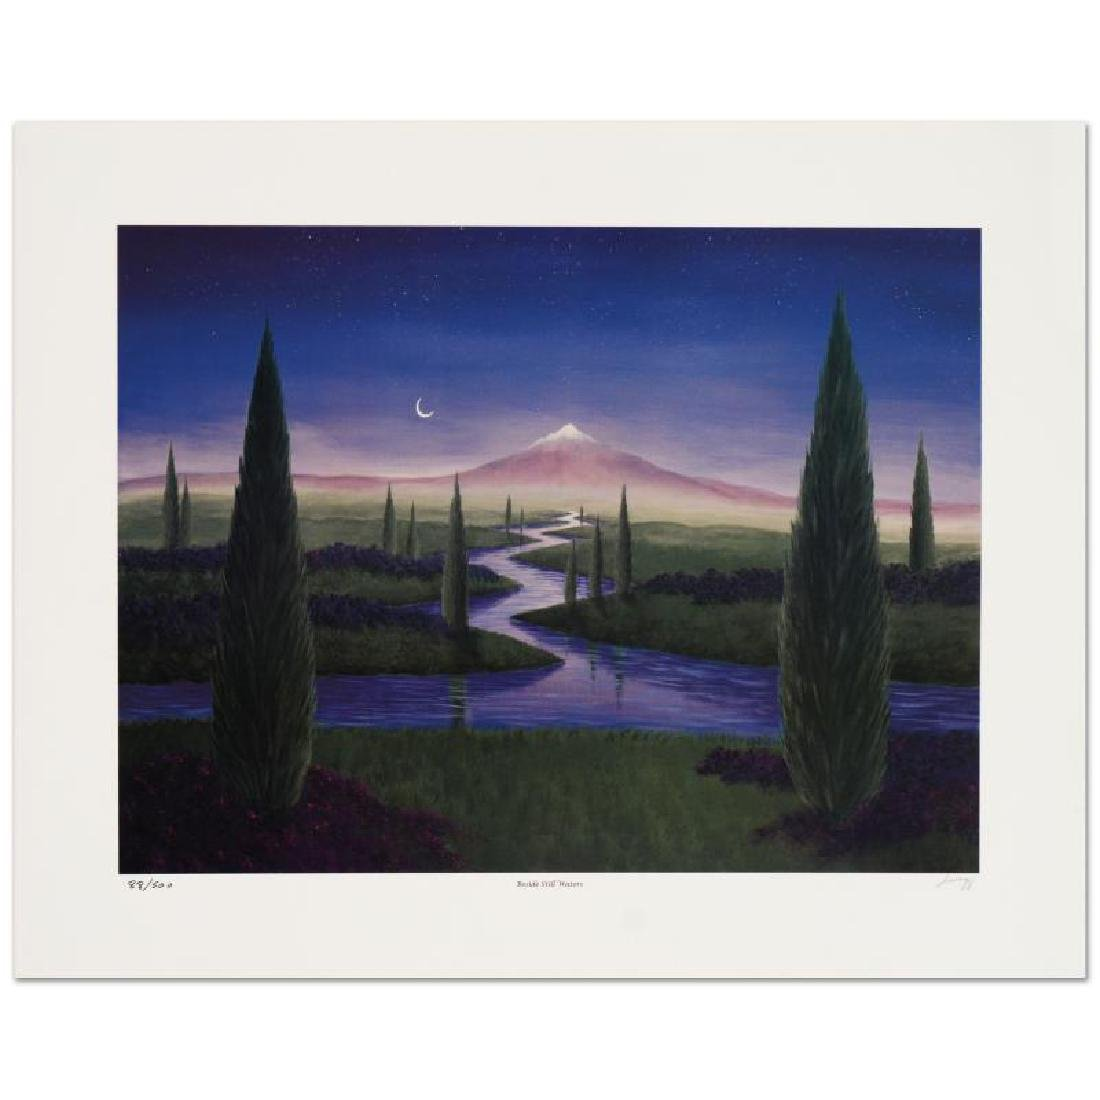 """Steven Lavaggi - """"Beside Still Waters"""" Limited Edition - 3"""